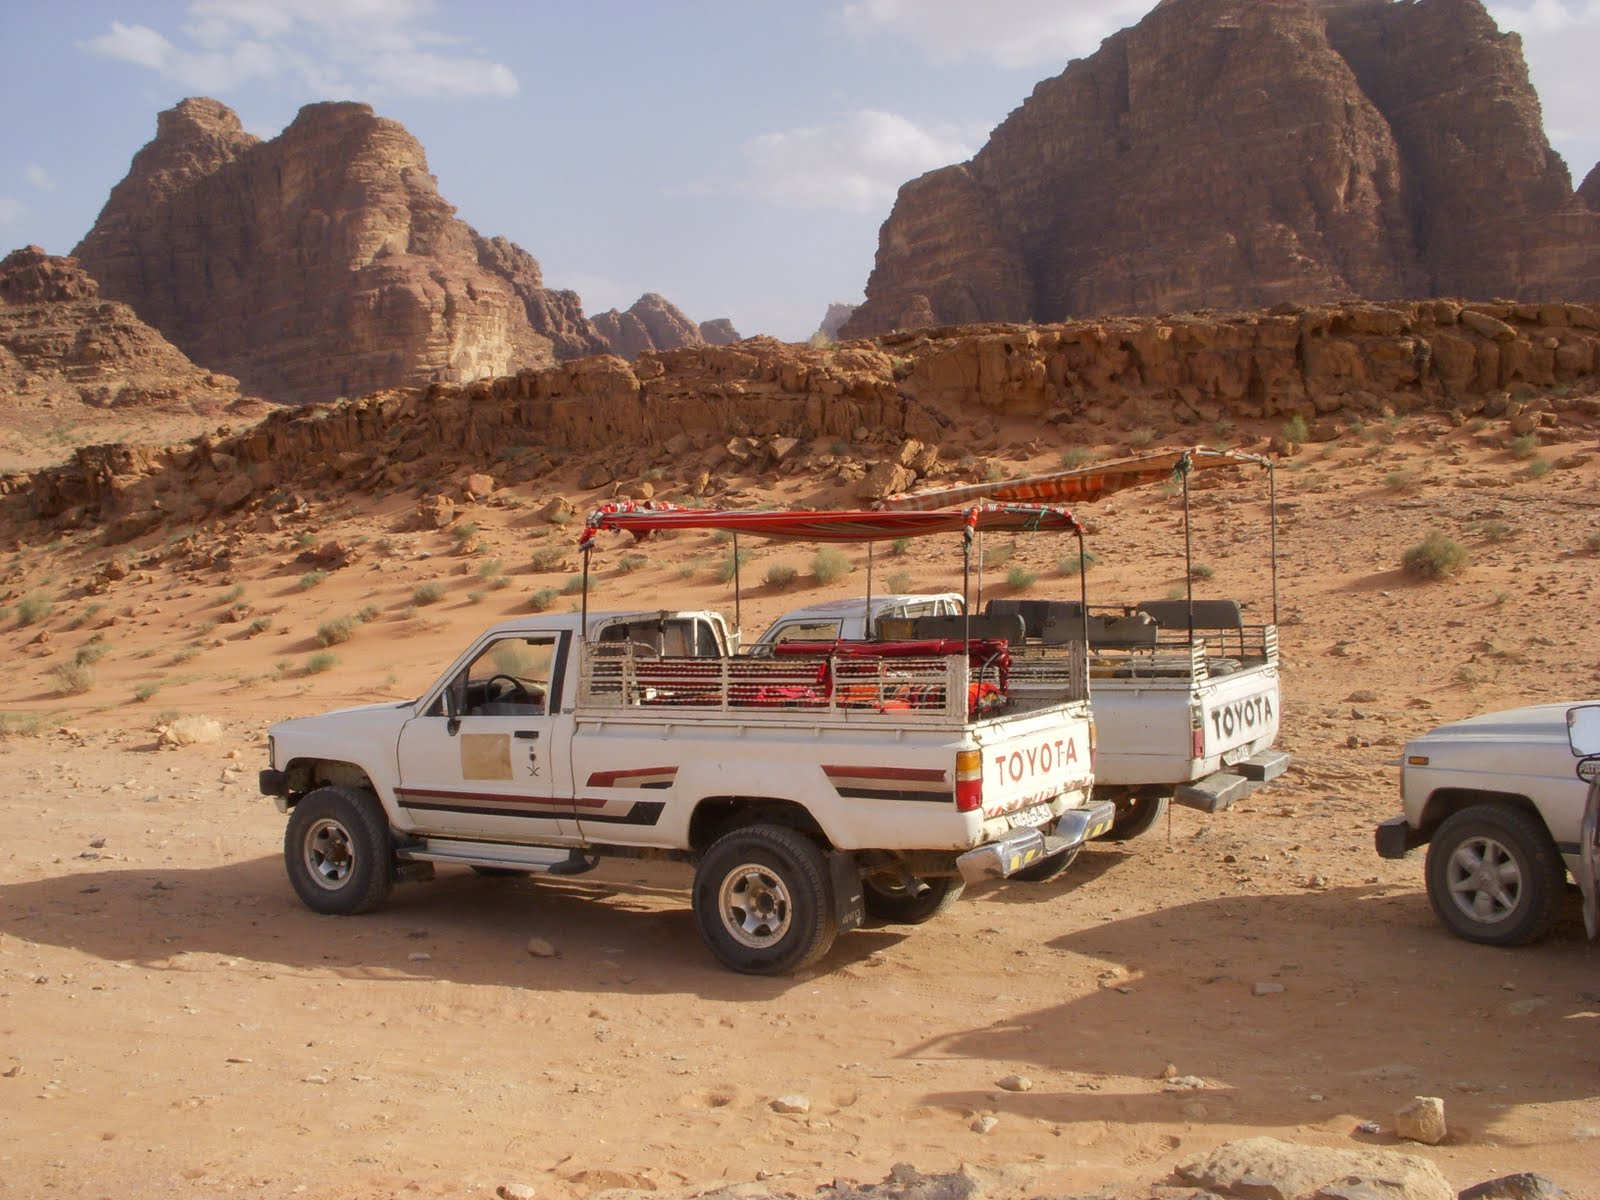 4x4 Jeep Tours in Wadi Rum, Jordan